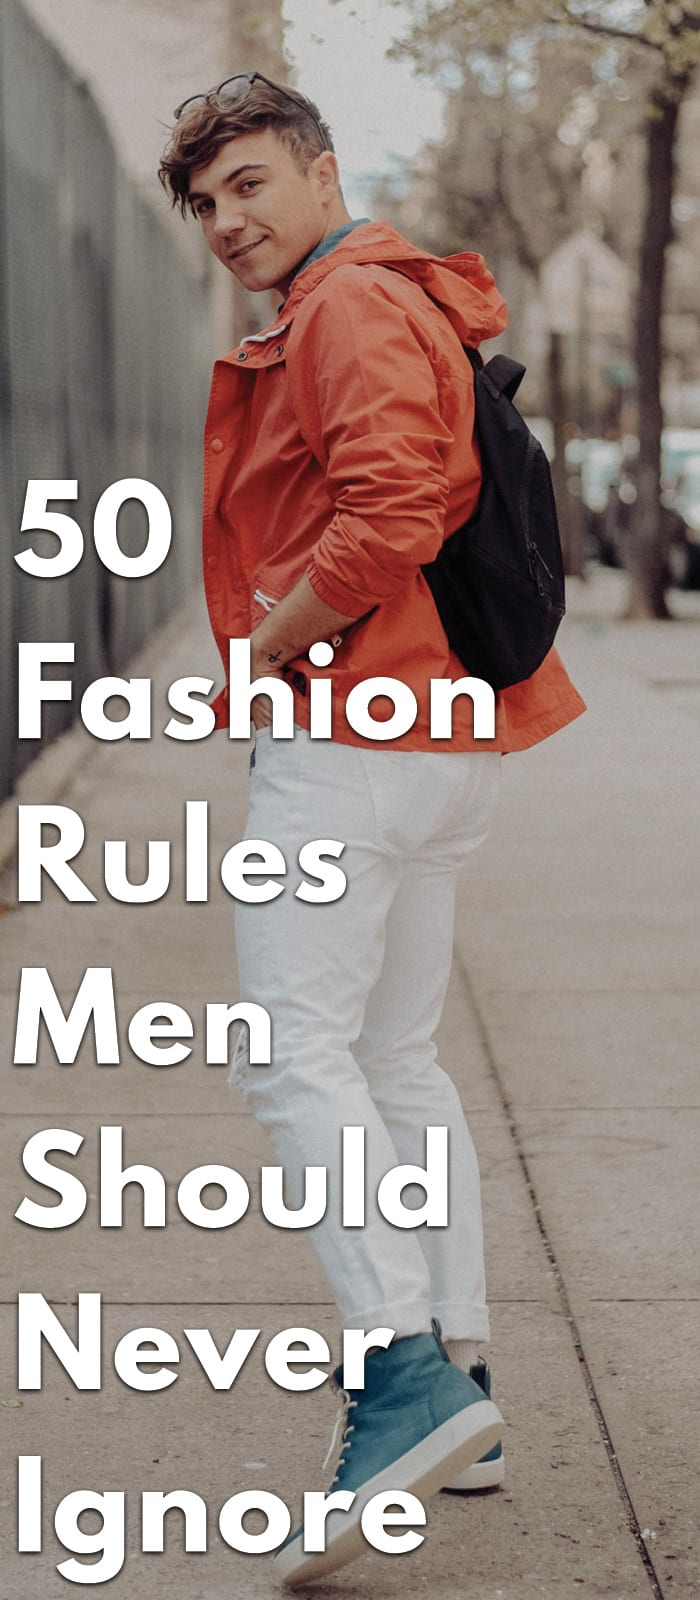 50-Fashion-Rules-Men-Should-Never-Ignore.